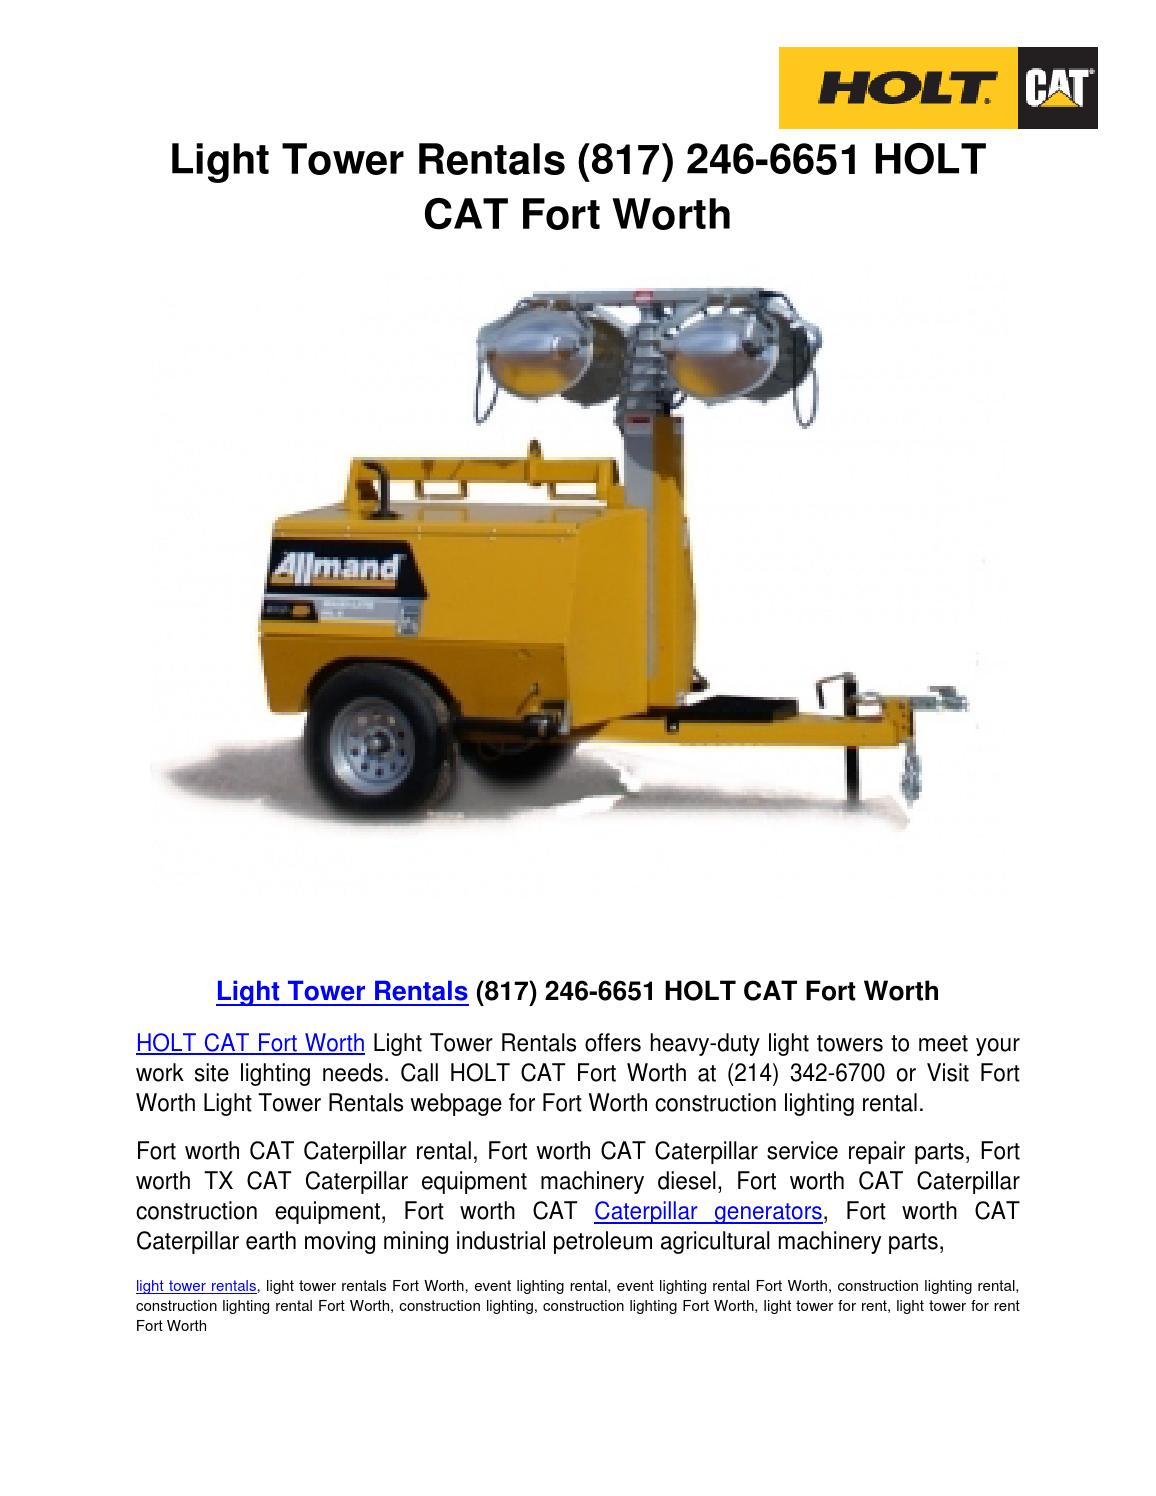 Seemly Light Tower Rentals Holt Cat Fort Worth Light Tower Rentalsby Holtcatfortworth Issuu Light Tower Rentals Holt Cat Fort Worth Light Tower Fort Worth Lighting Phone Number Fort Worth Tree Lightin houzz 01 Fort Worth Lighting